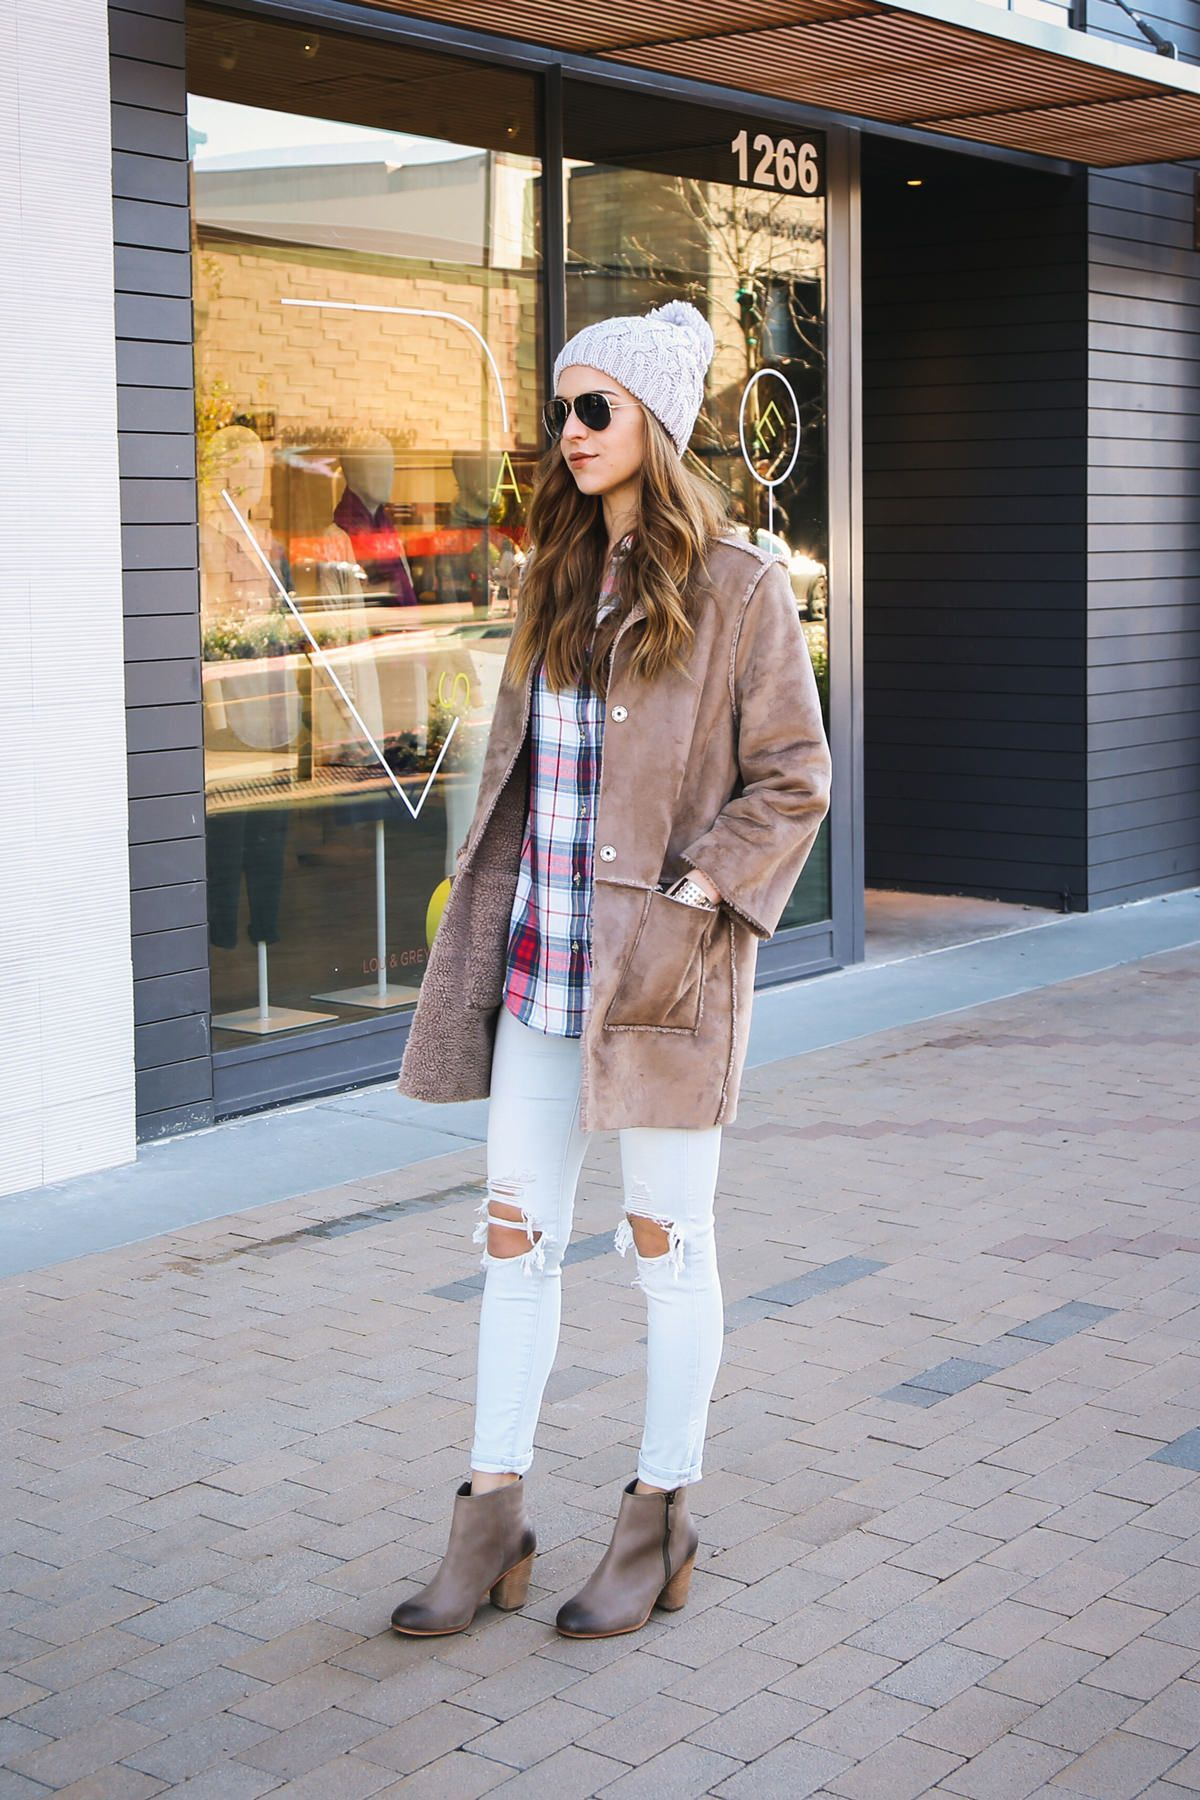 1d5a2a96d0 The Denim Series - The Life and Style of Nichole Ciotti | Camel coat ...